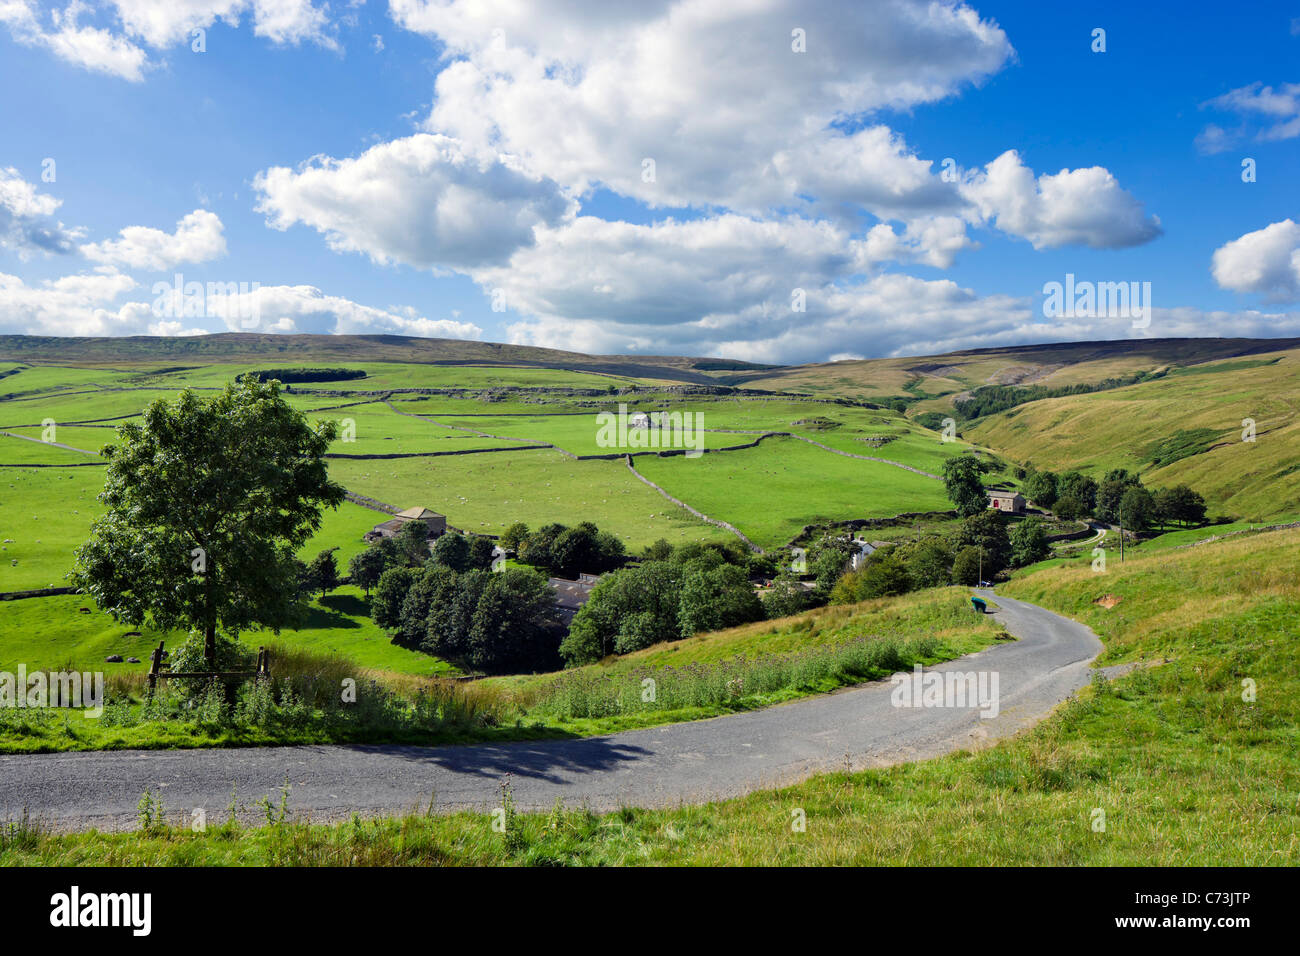 Countryside between Arncliffe and Malham, Littondale, Yorkshire Dales National Park, England, UK - Stock Image